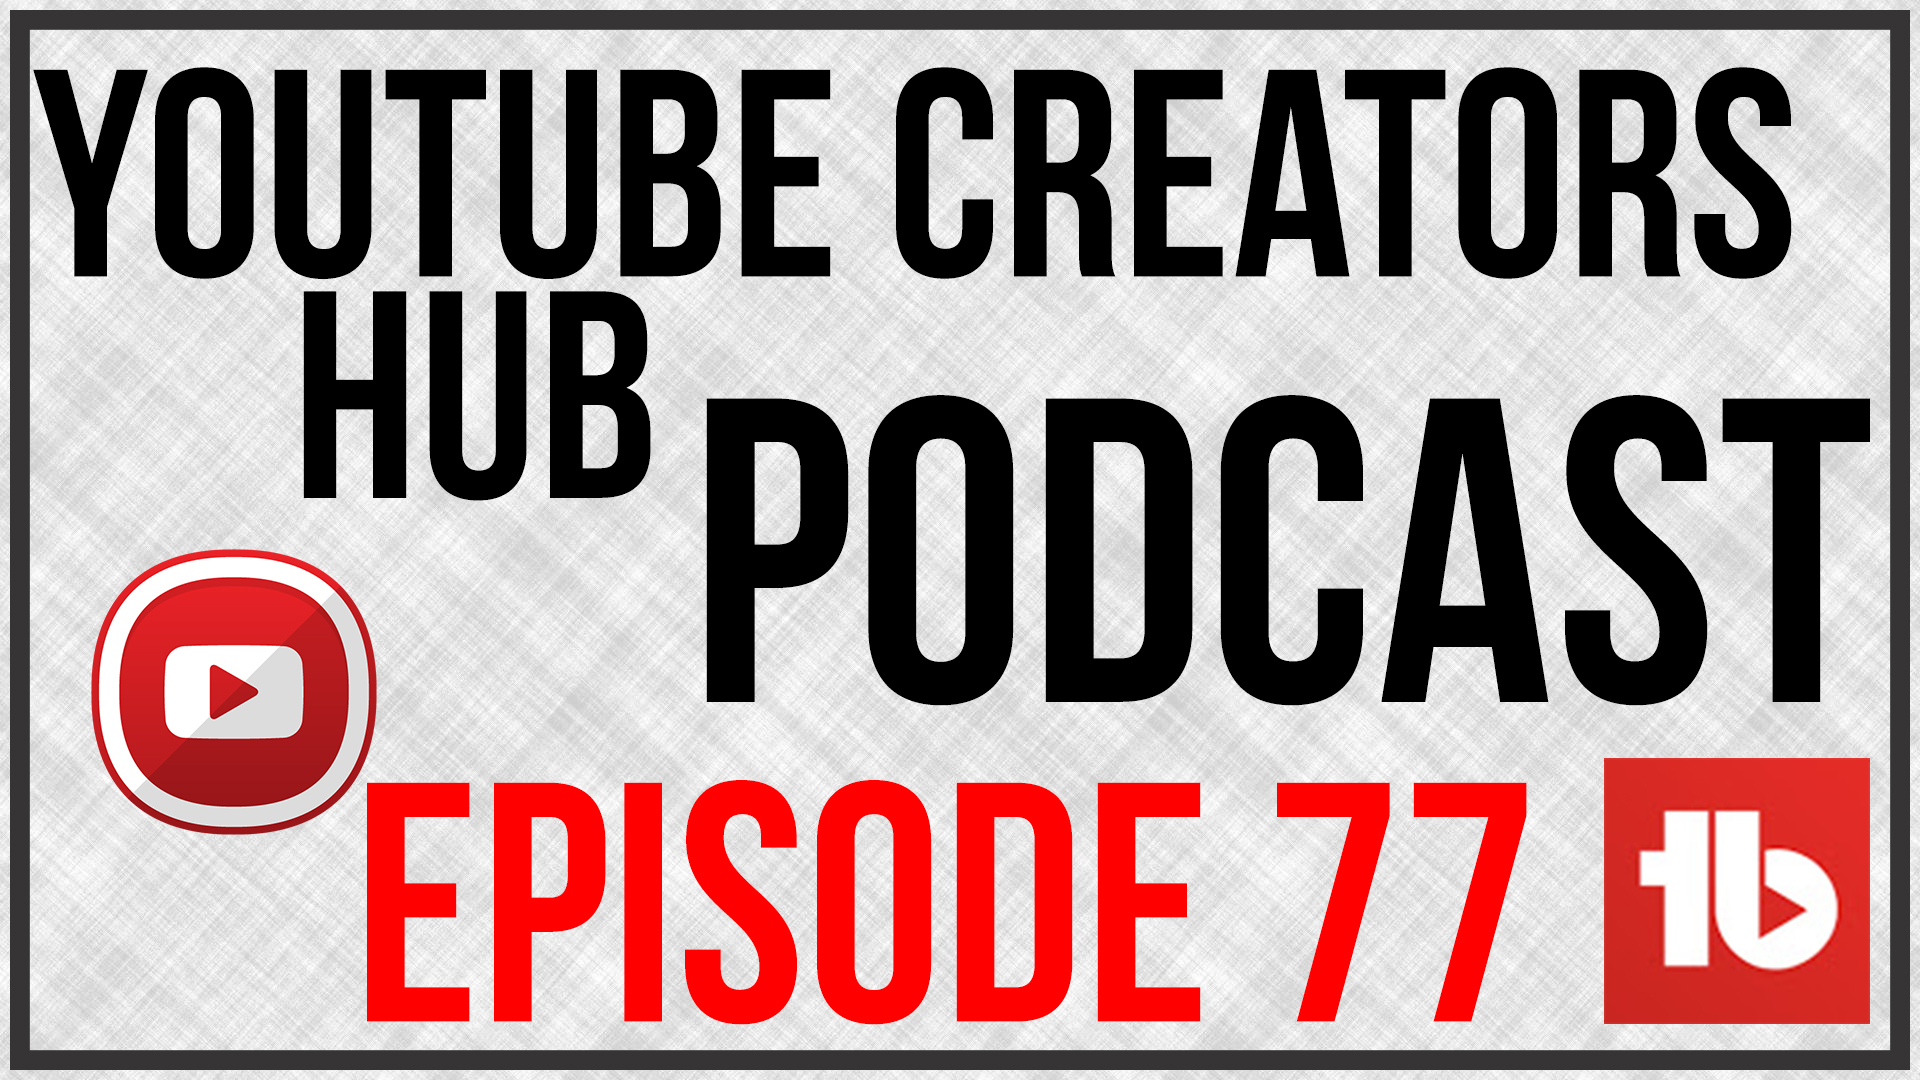 YouTube Creators Hub Episode 77